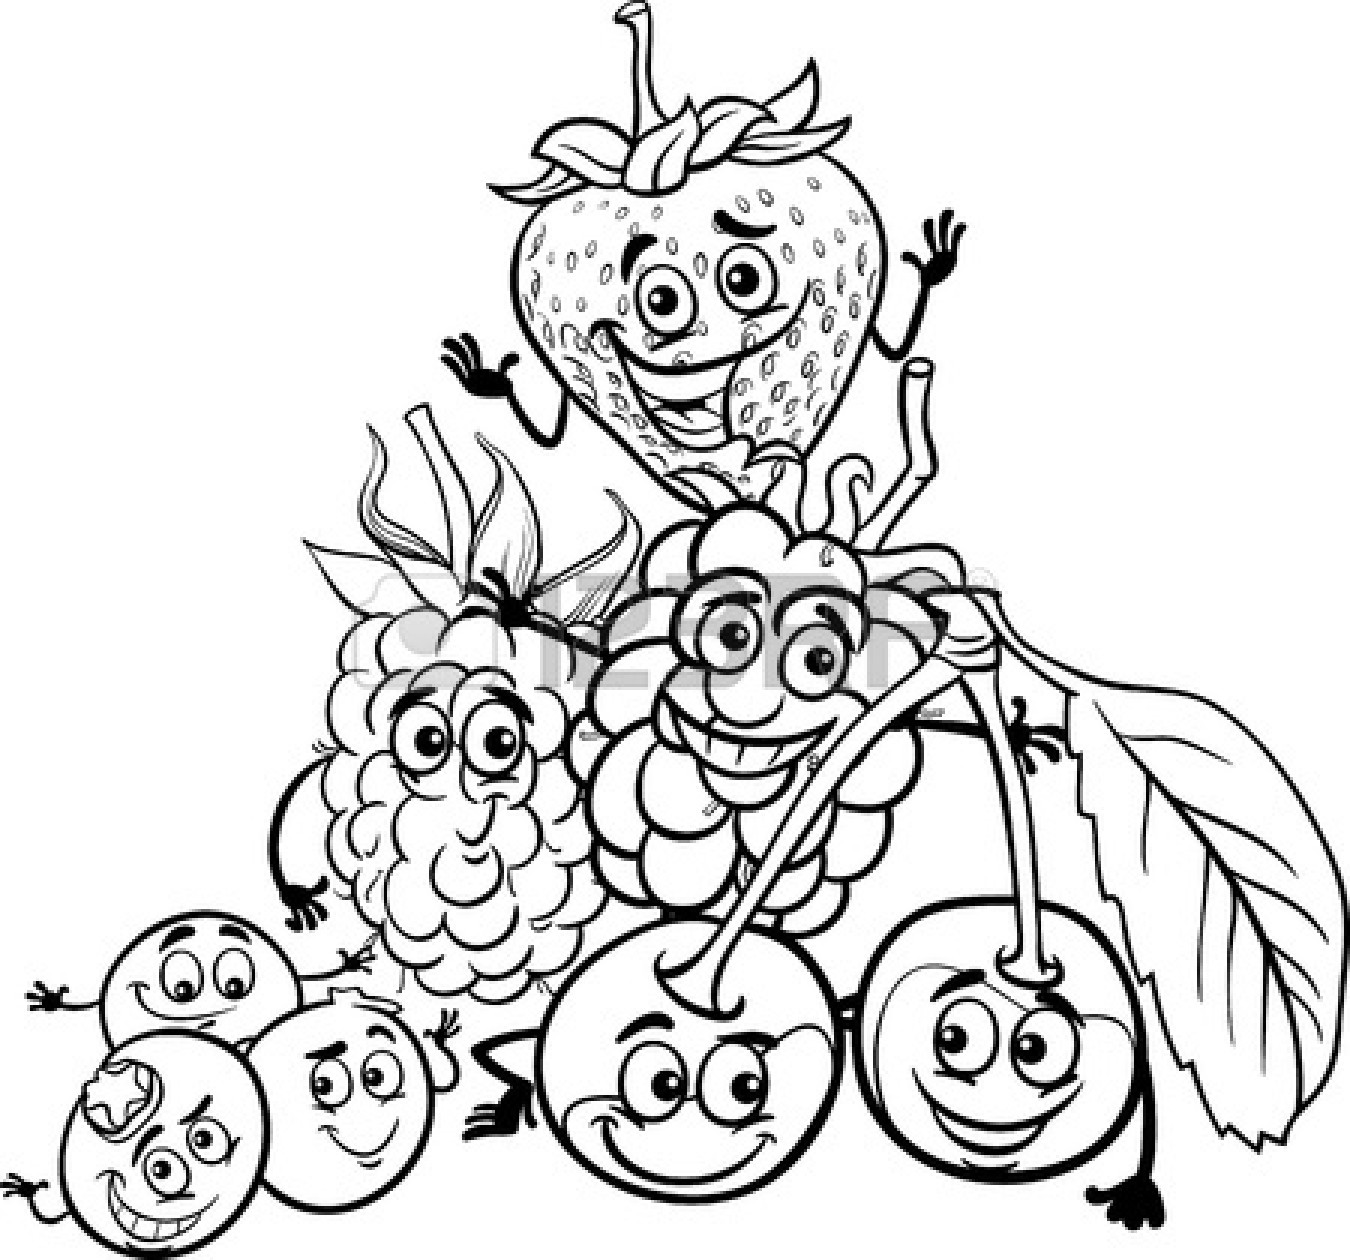 Fruit Black And White Fruit Clip Art Black And White